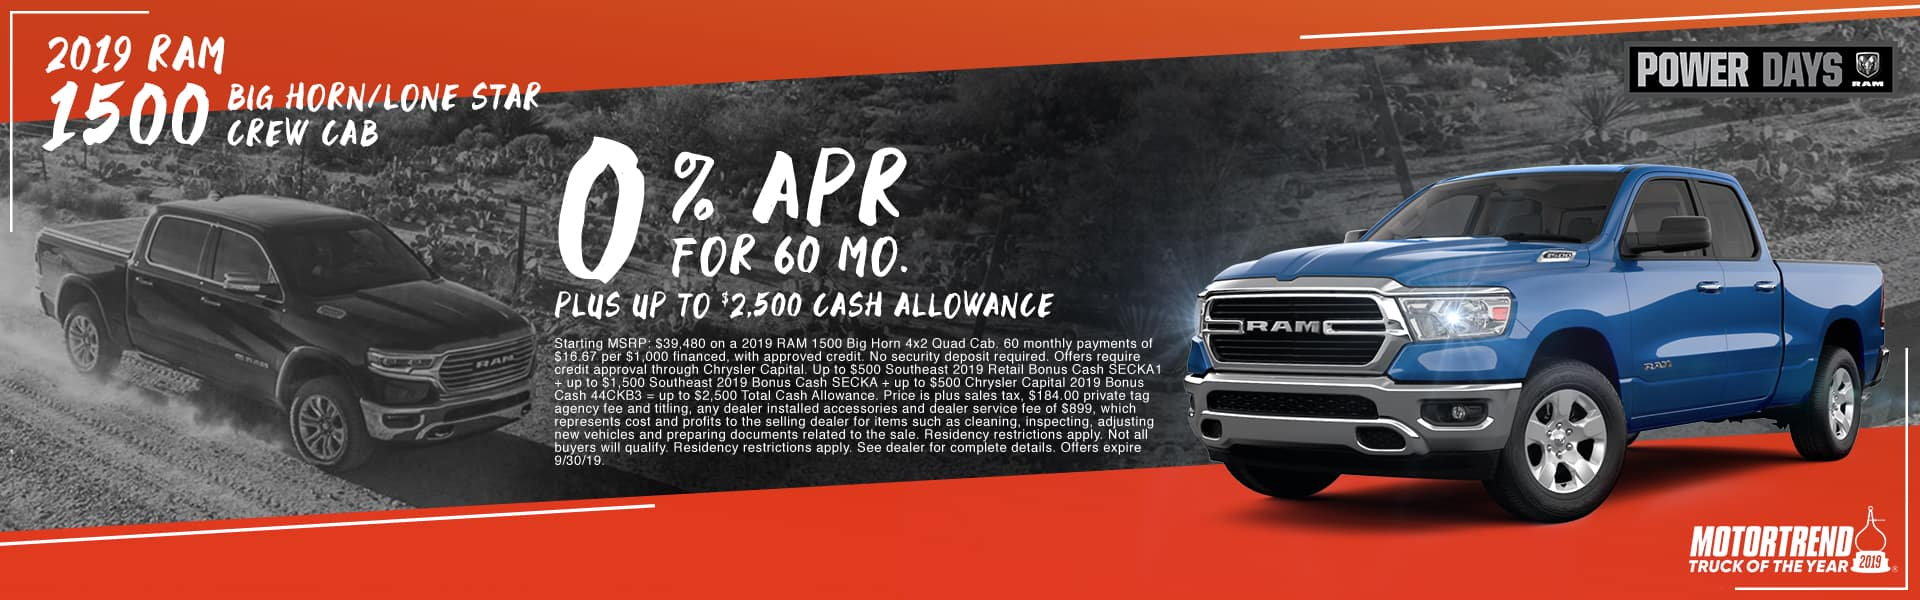 2019 RAM 1500 Big Horn/Lone Star Crew Cab | 0% APR For 60 Months PLUS Up TO $2,500 Cash Allowance | RAM Power Days | Motortrend Truck Of The Year 2019